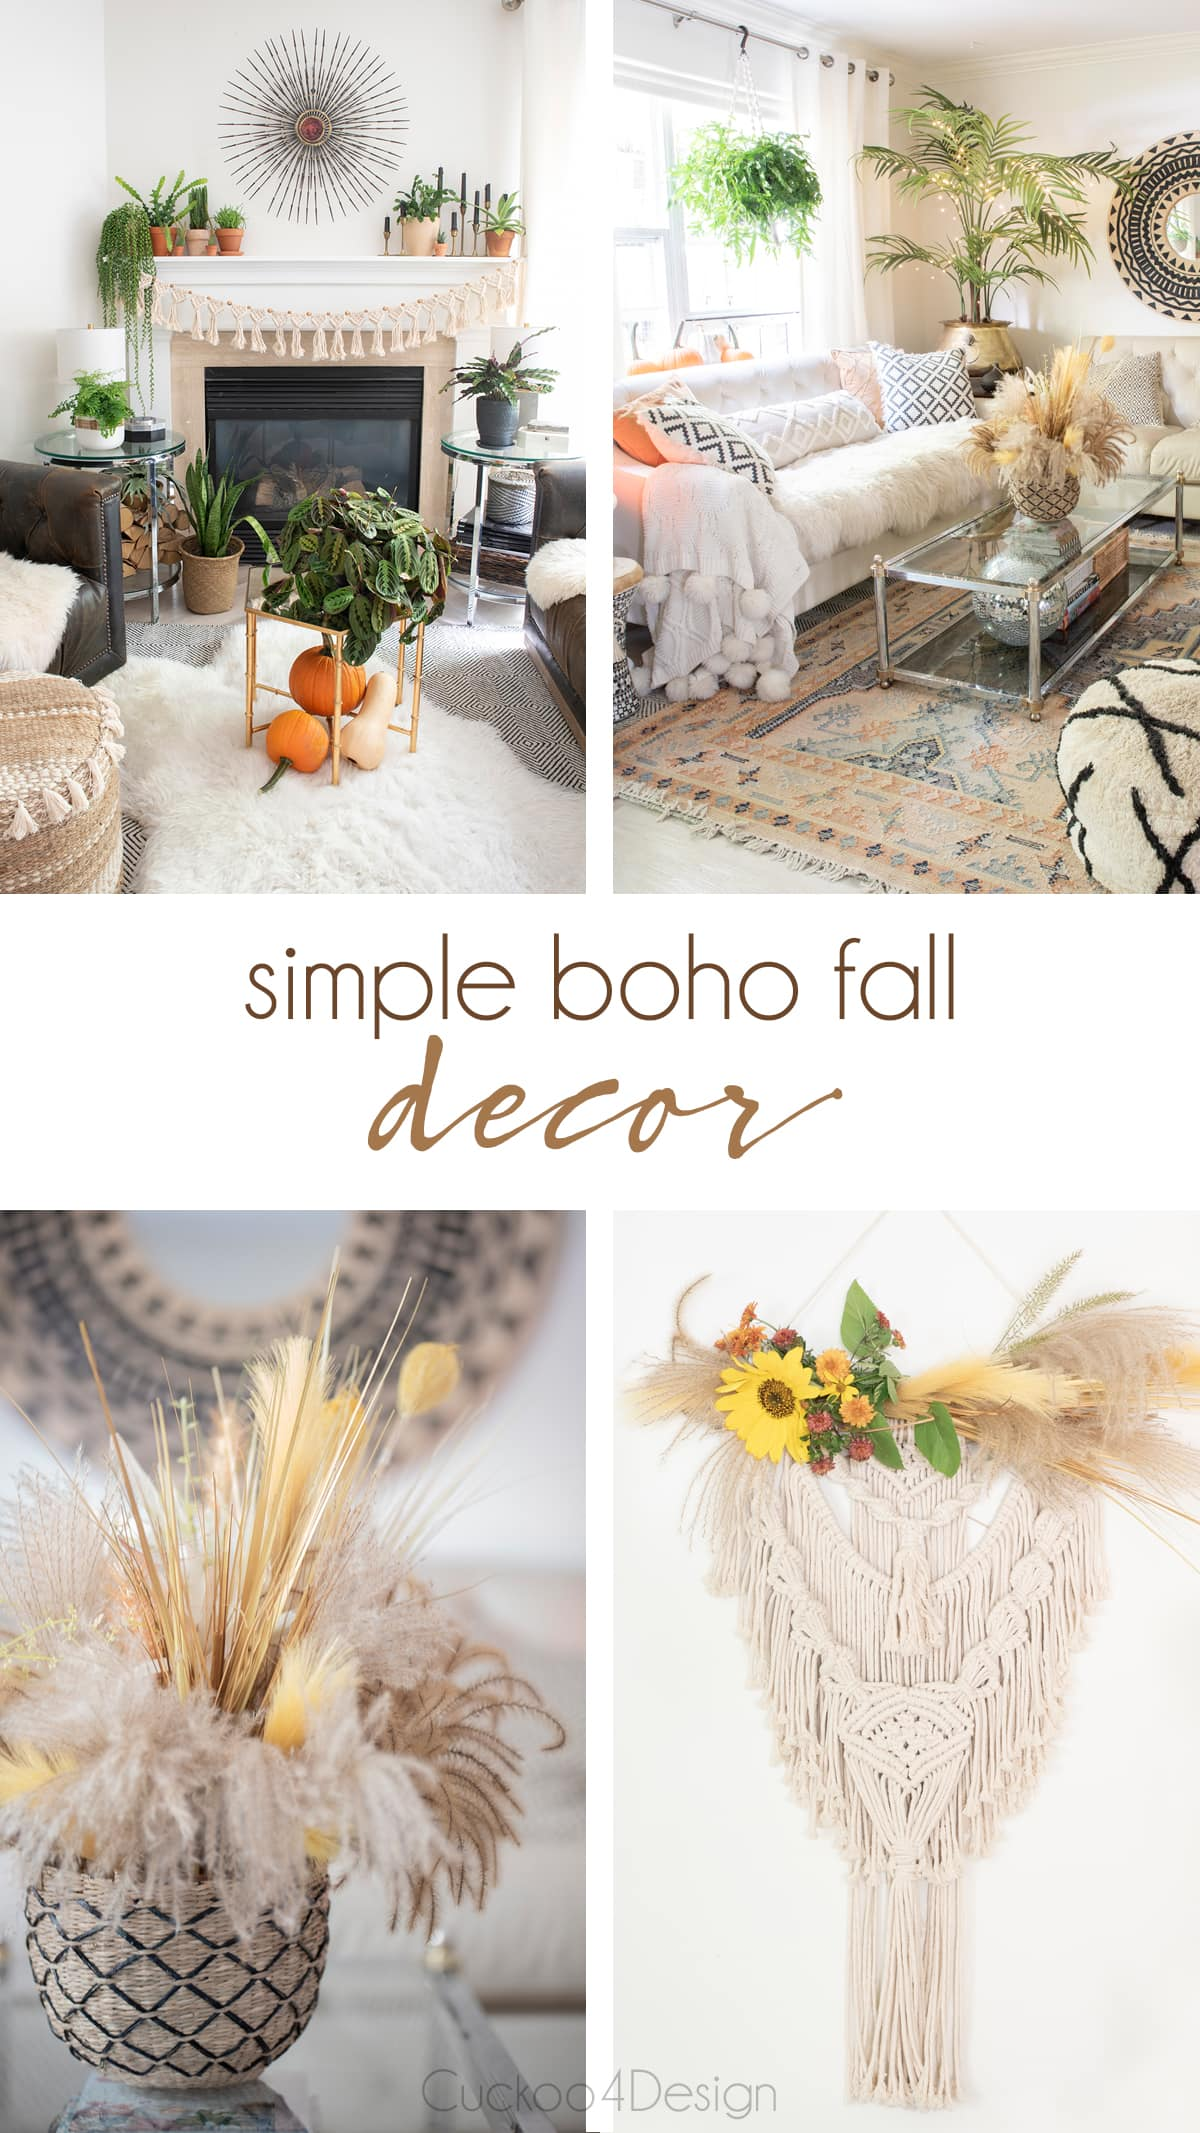 collage of 4 different types of boho fall decor